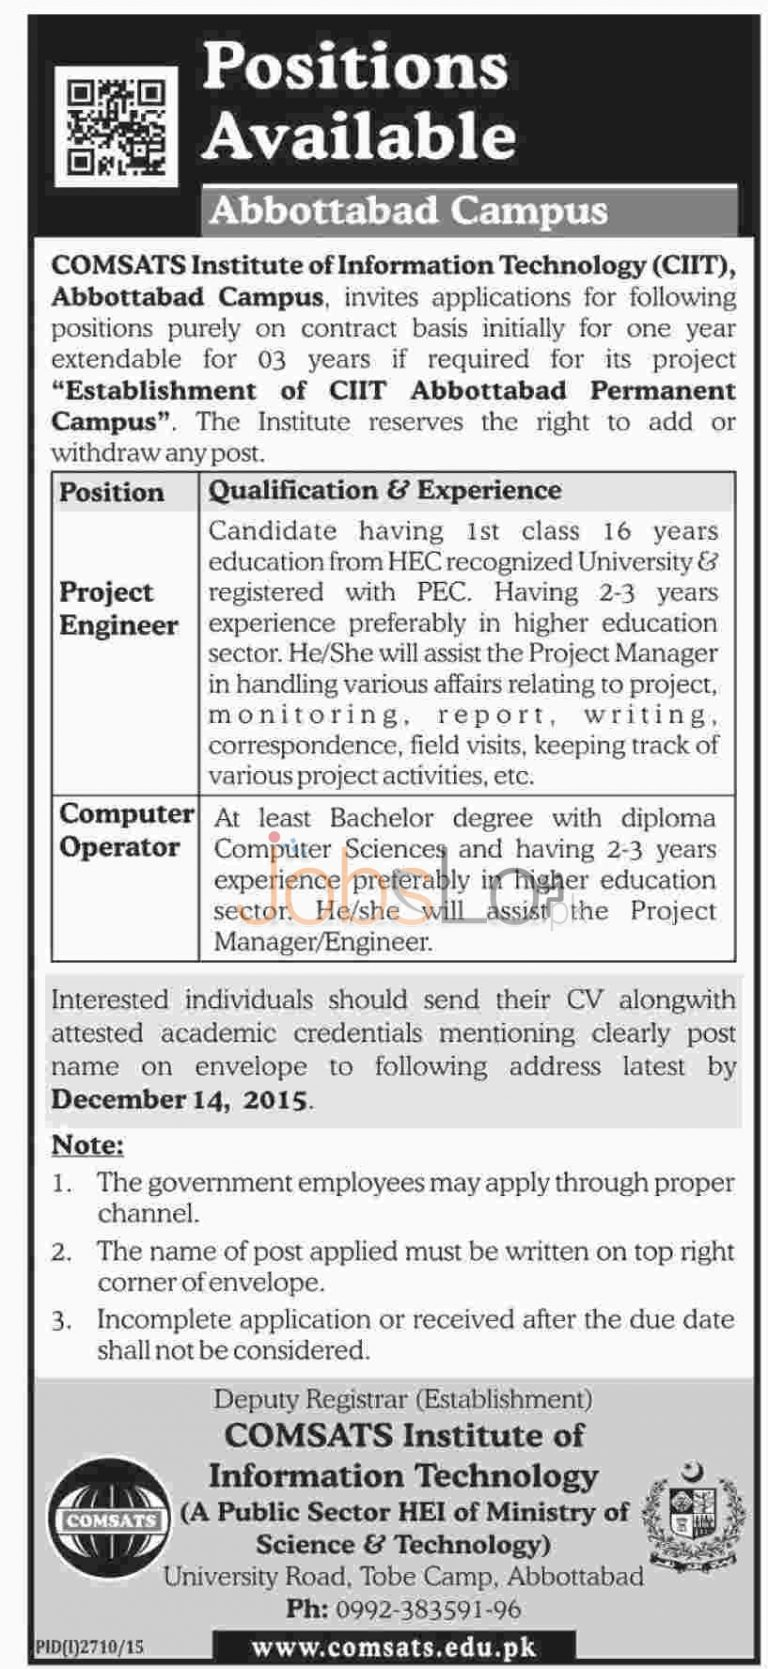 COMSATS Abbottabad Jobs 2015 for Computer Operator & Project Engineer